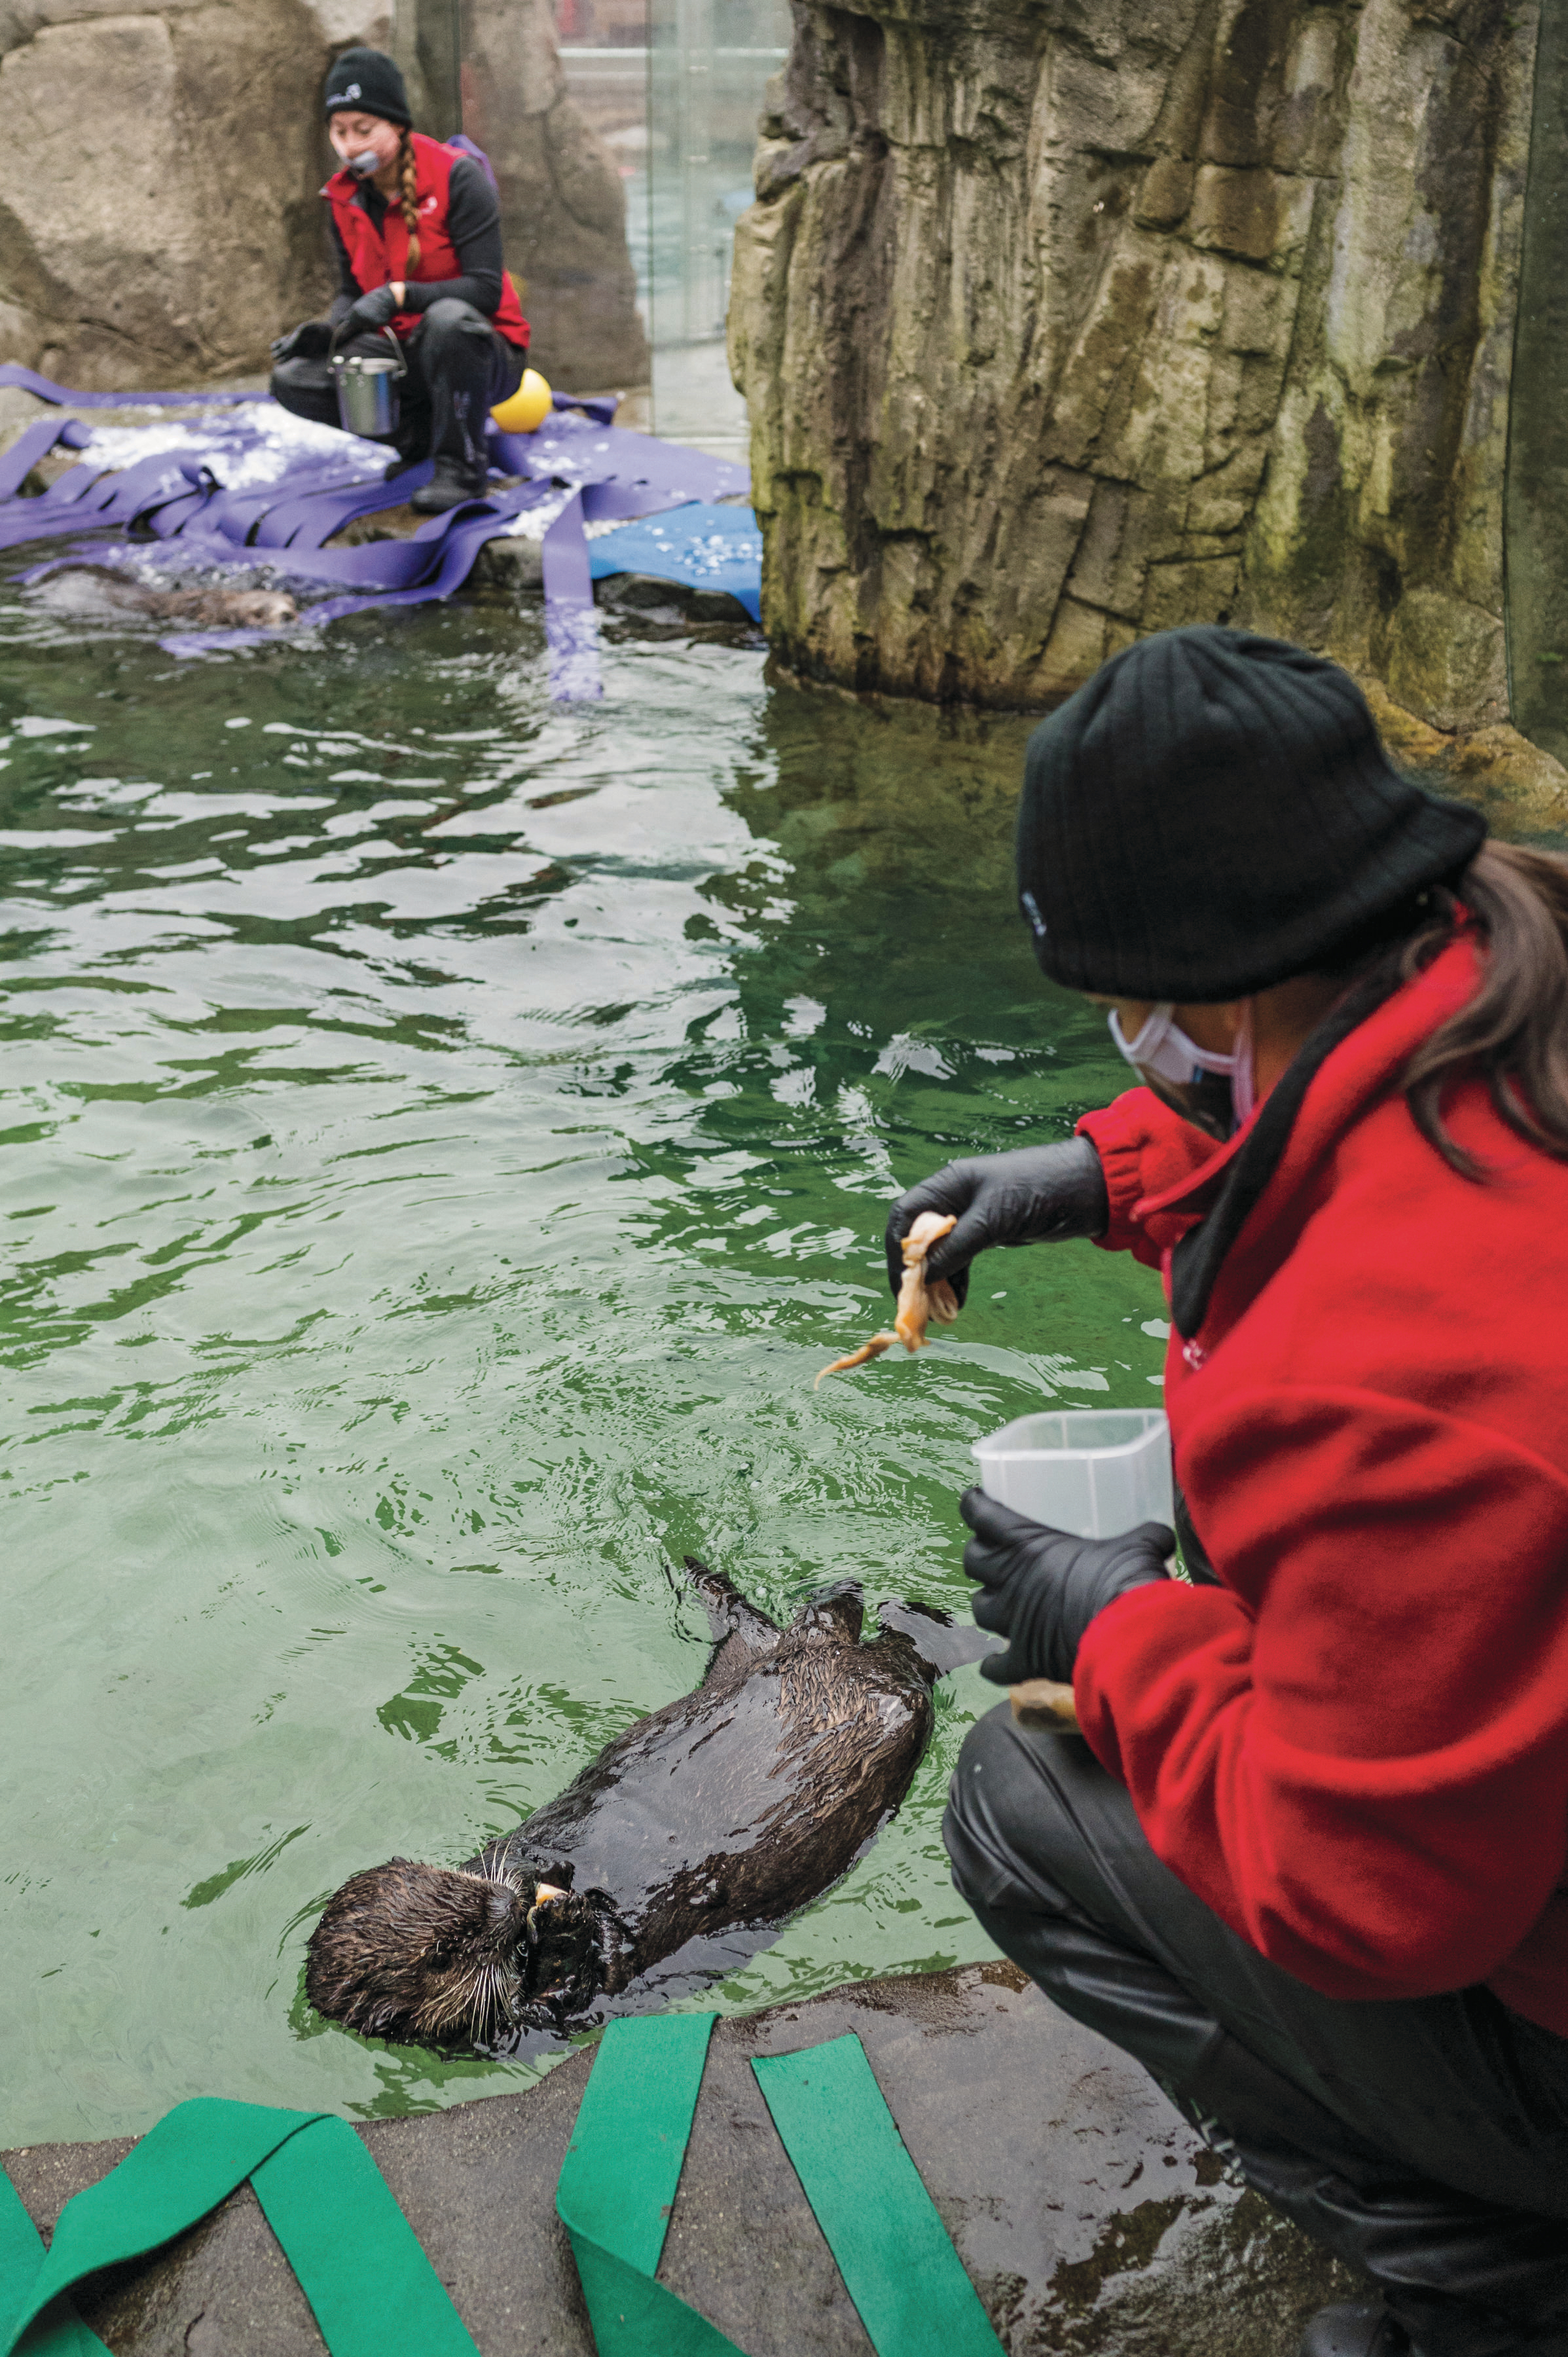 The otter's pandemic-weary fans watch as he eats, sleeps, plays and is groomed by his caretakers (Photograph by Felicia Chang)